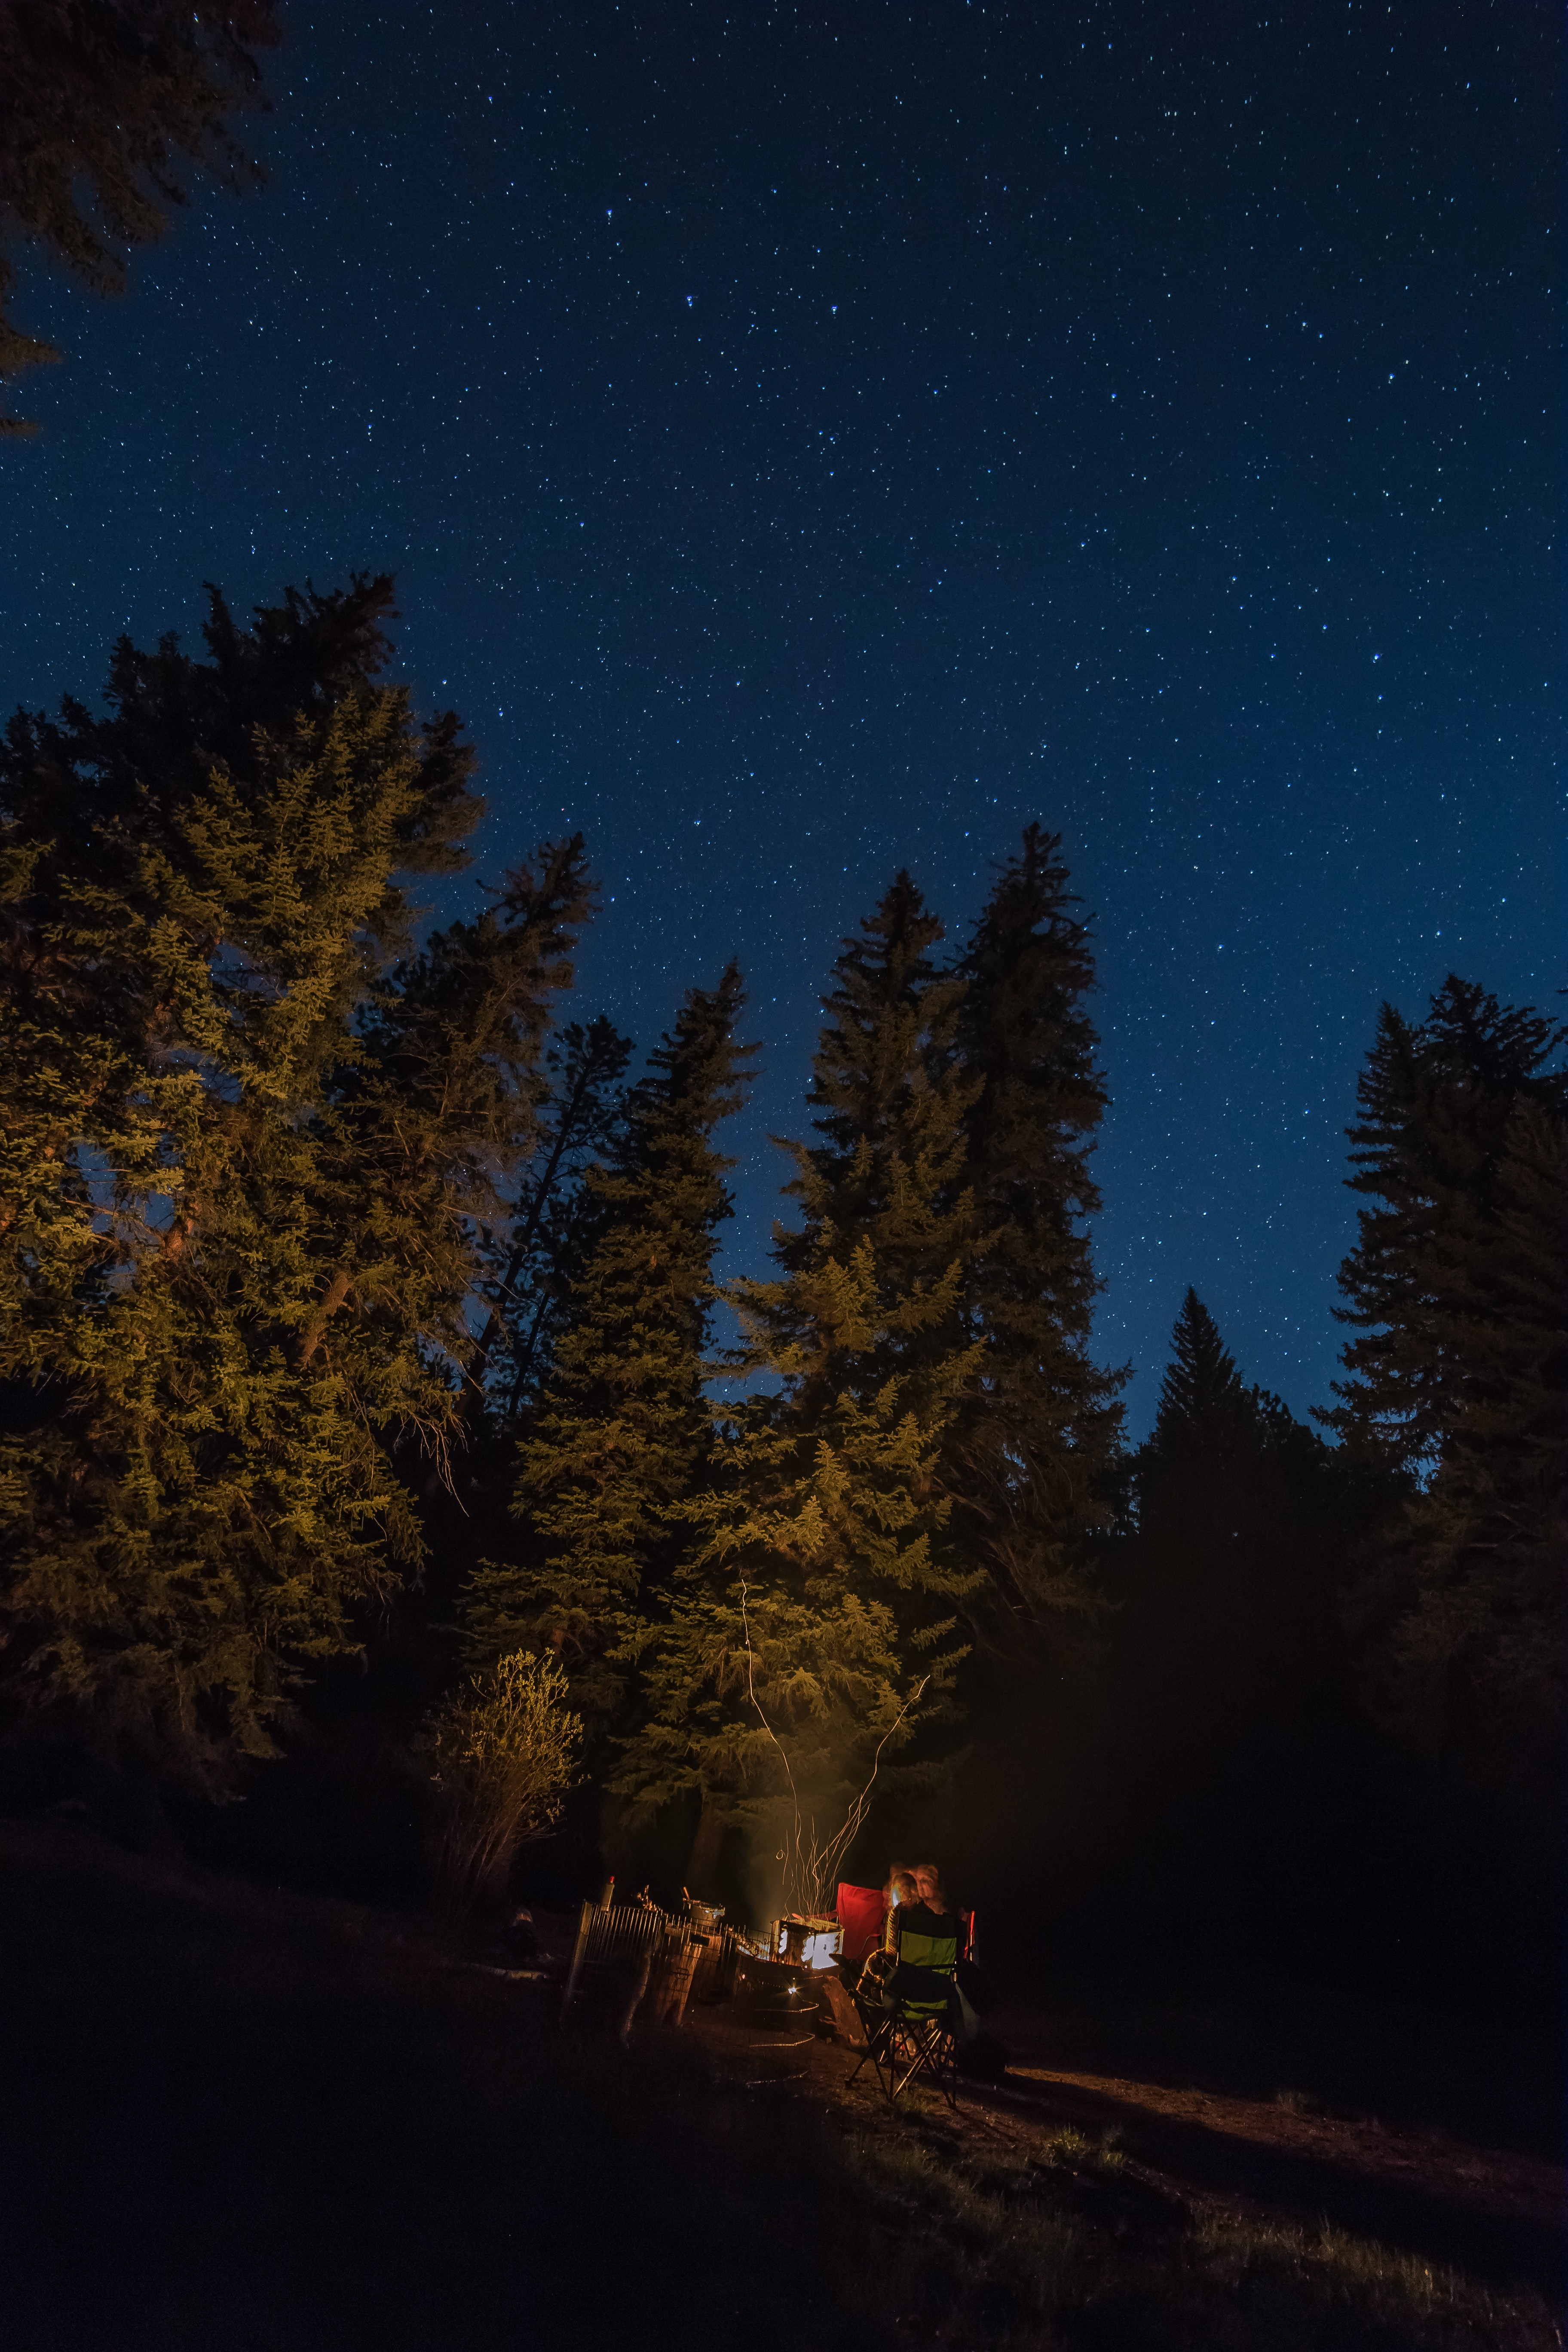 Camping in the woods on a clear starry night